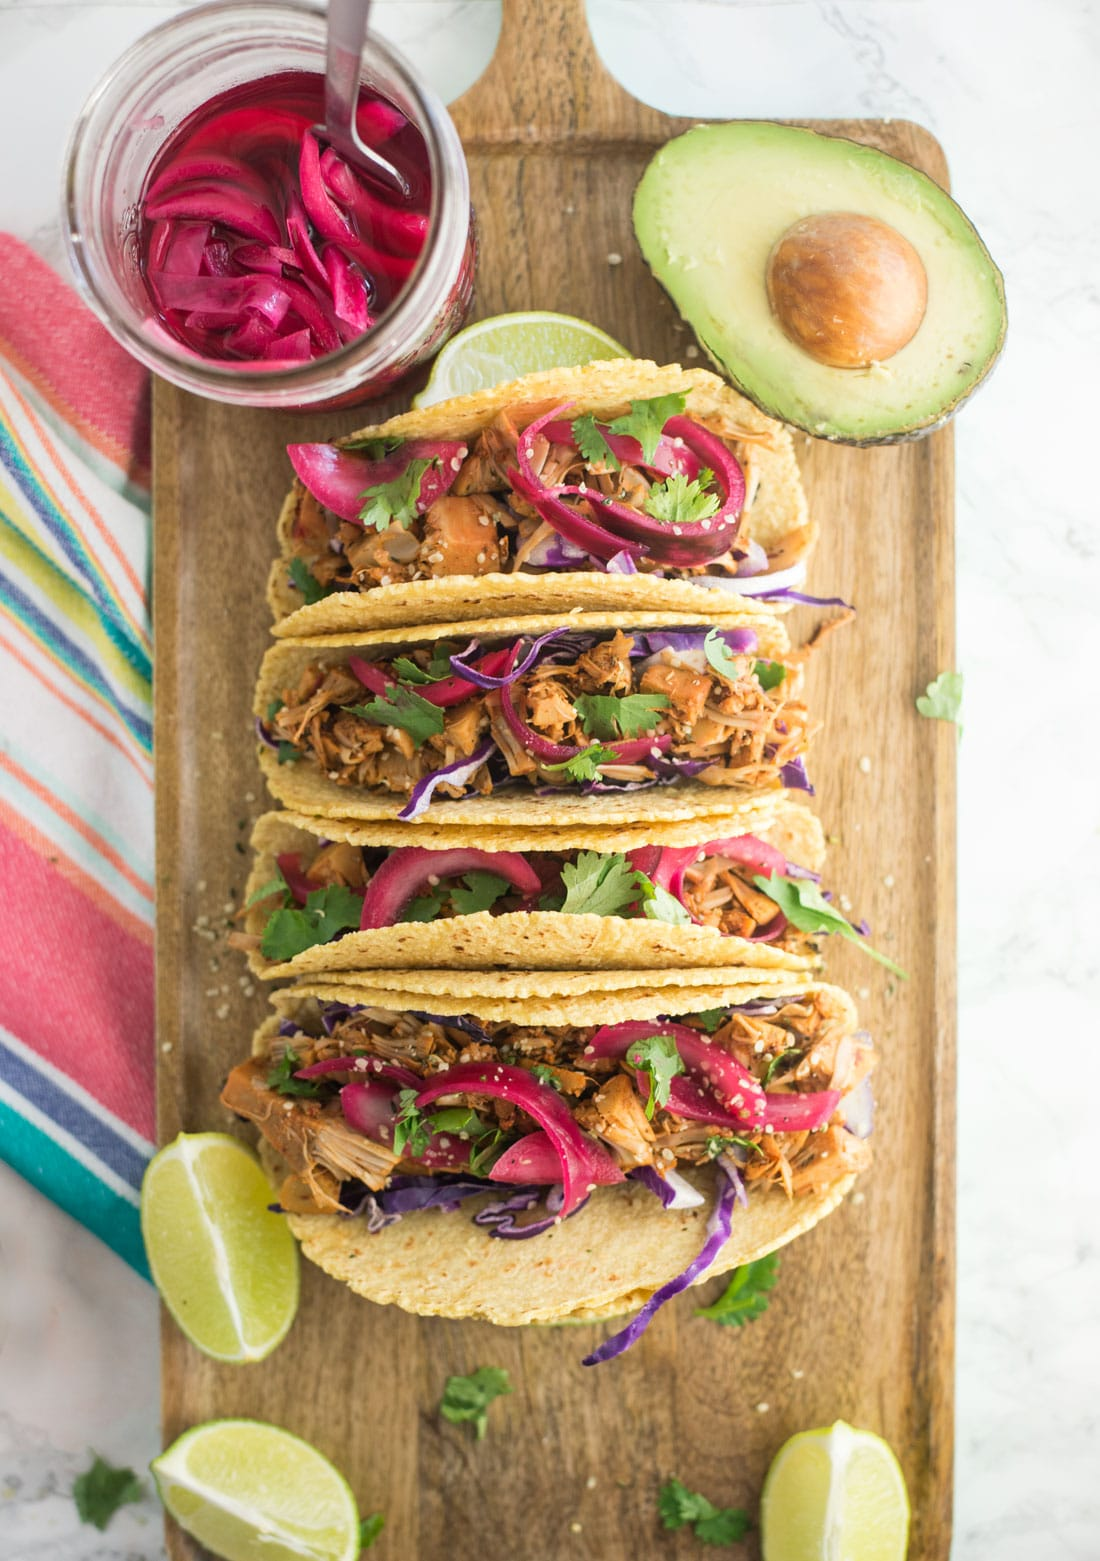 vegan jackfruit pulled pork tacos on wooden board with pickled red onions, avocado, lime wedges, and cilantro with colorful napkin on marble counter